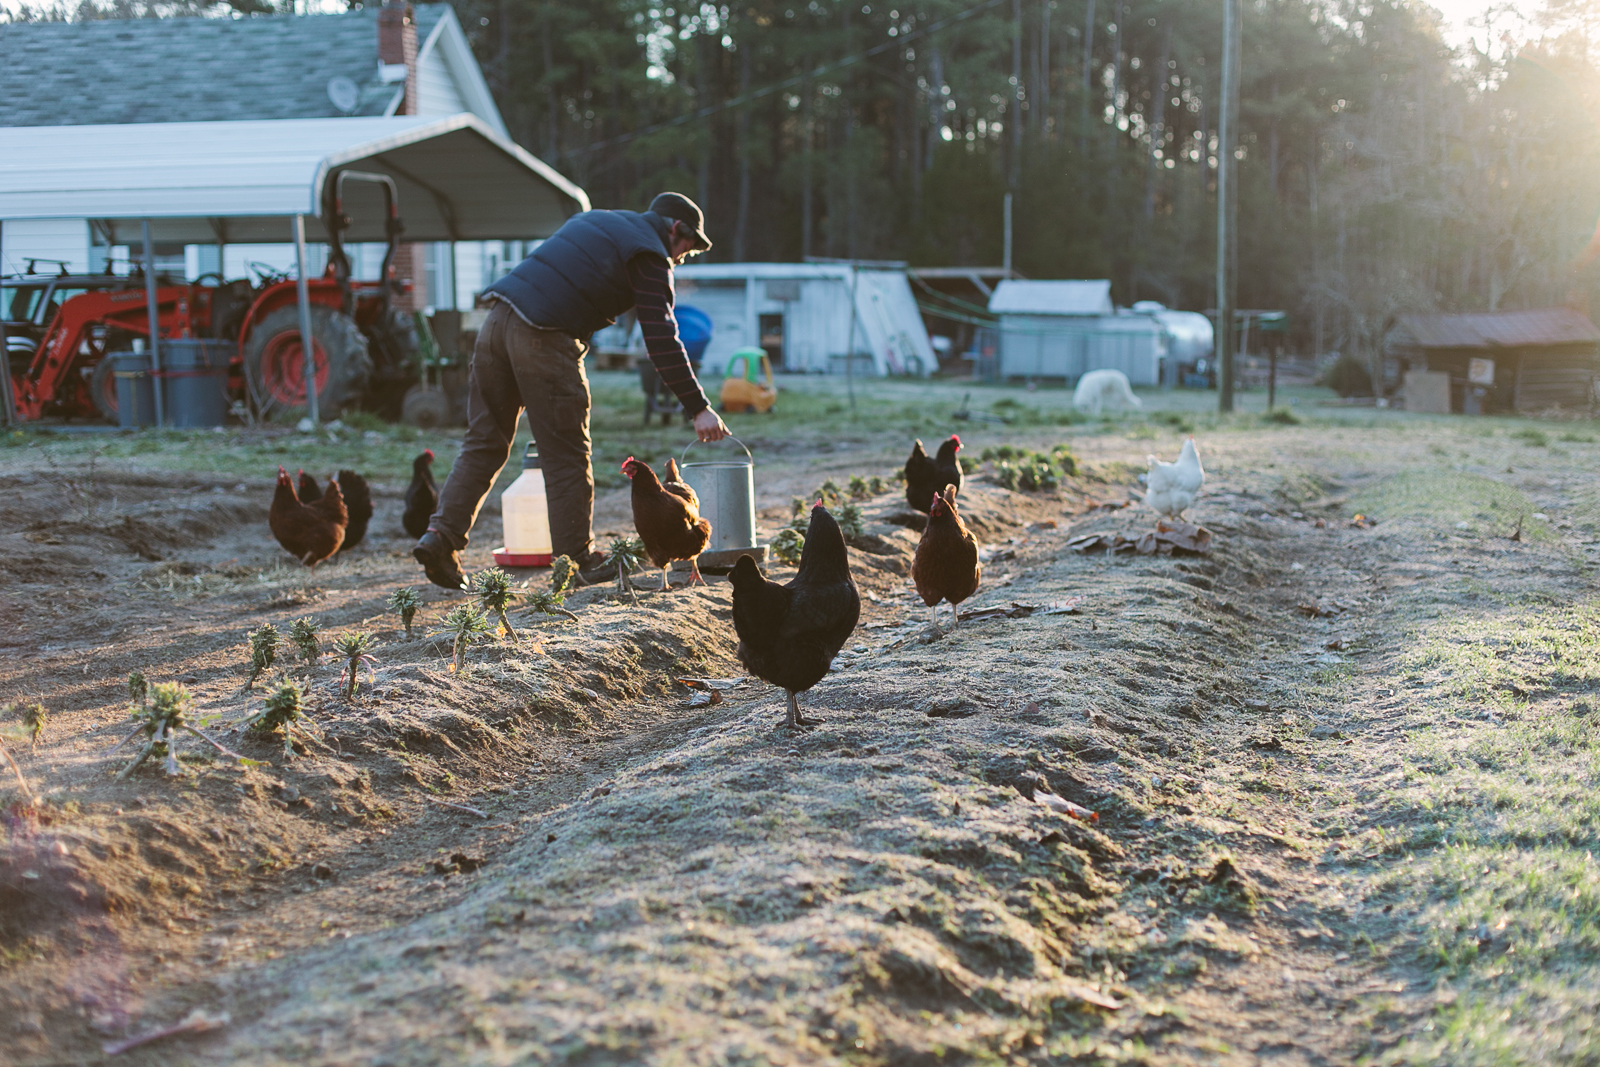 Simple Evening: Raleigh - Farm to Table | The Fresh Exchange